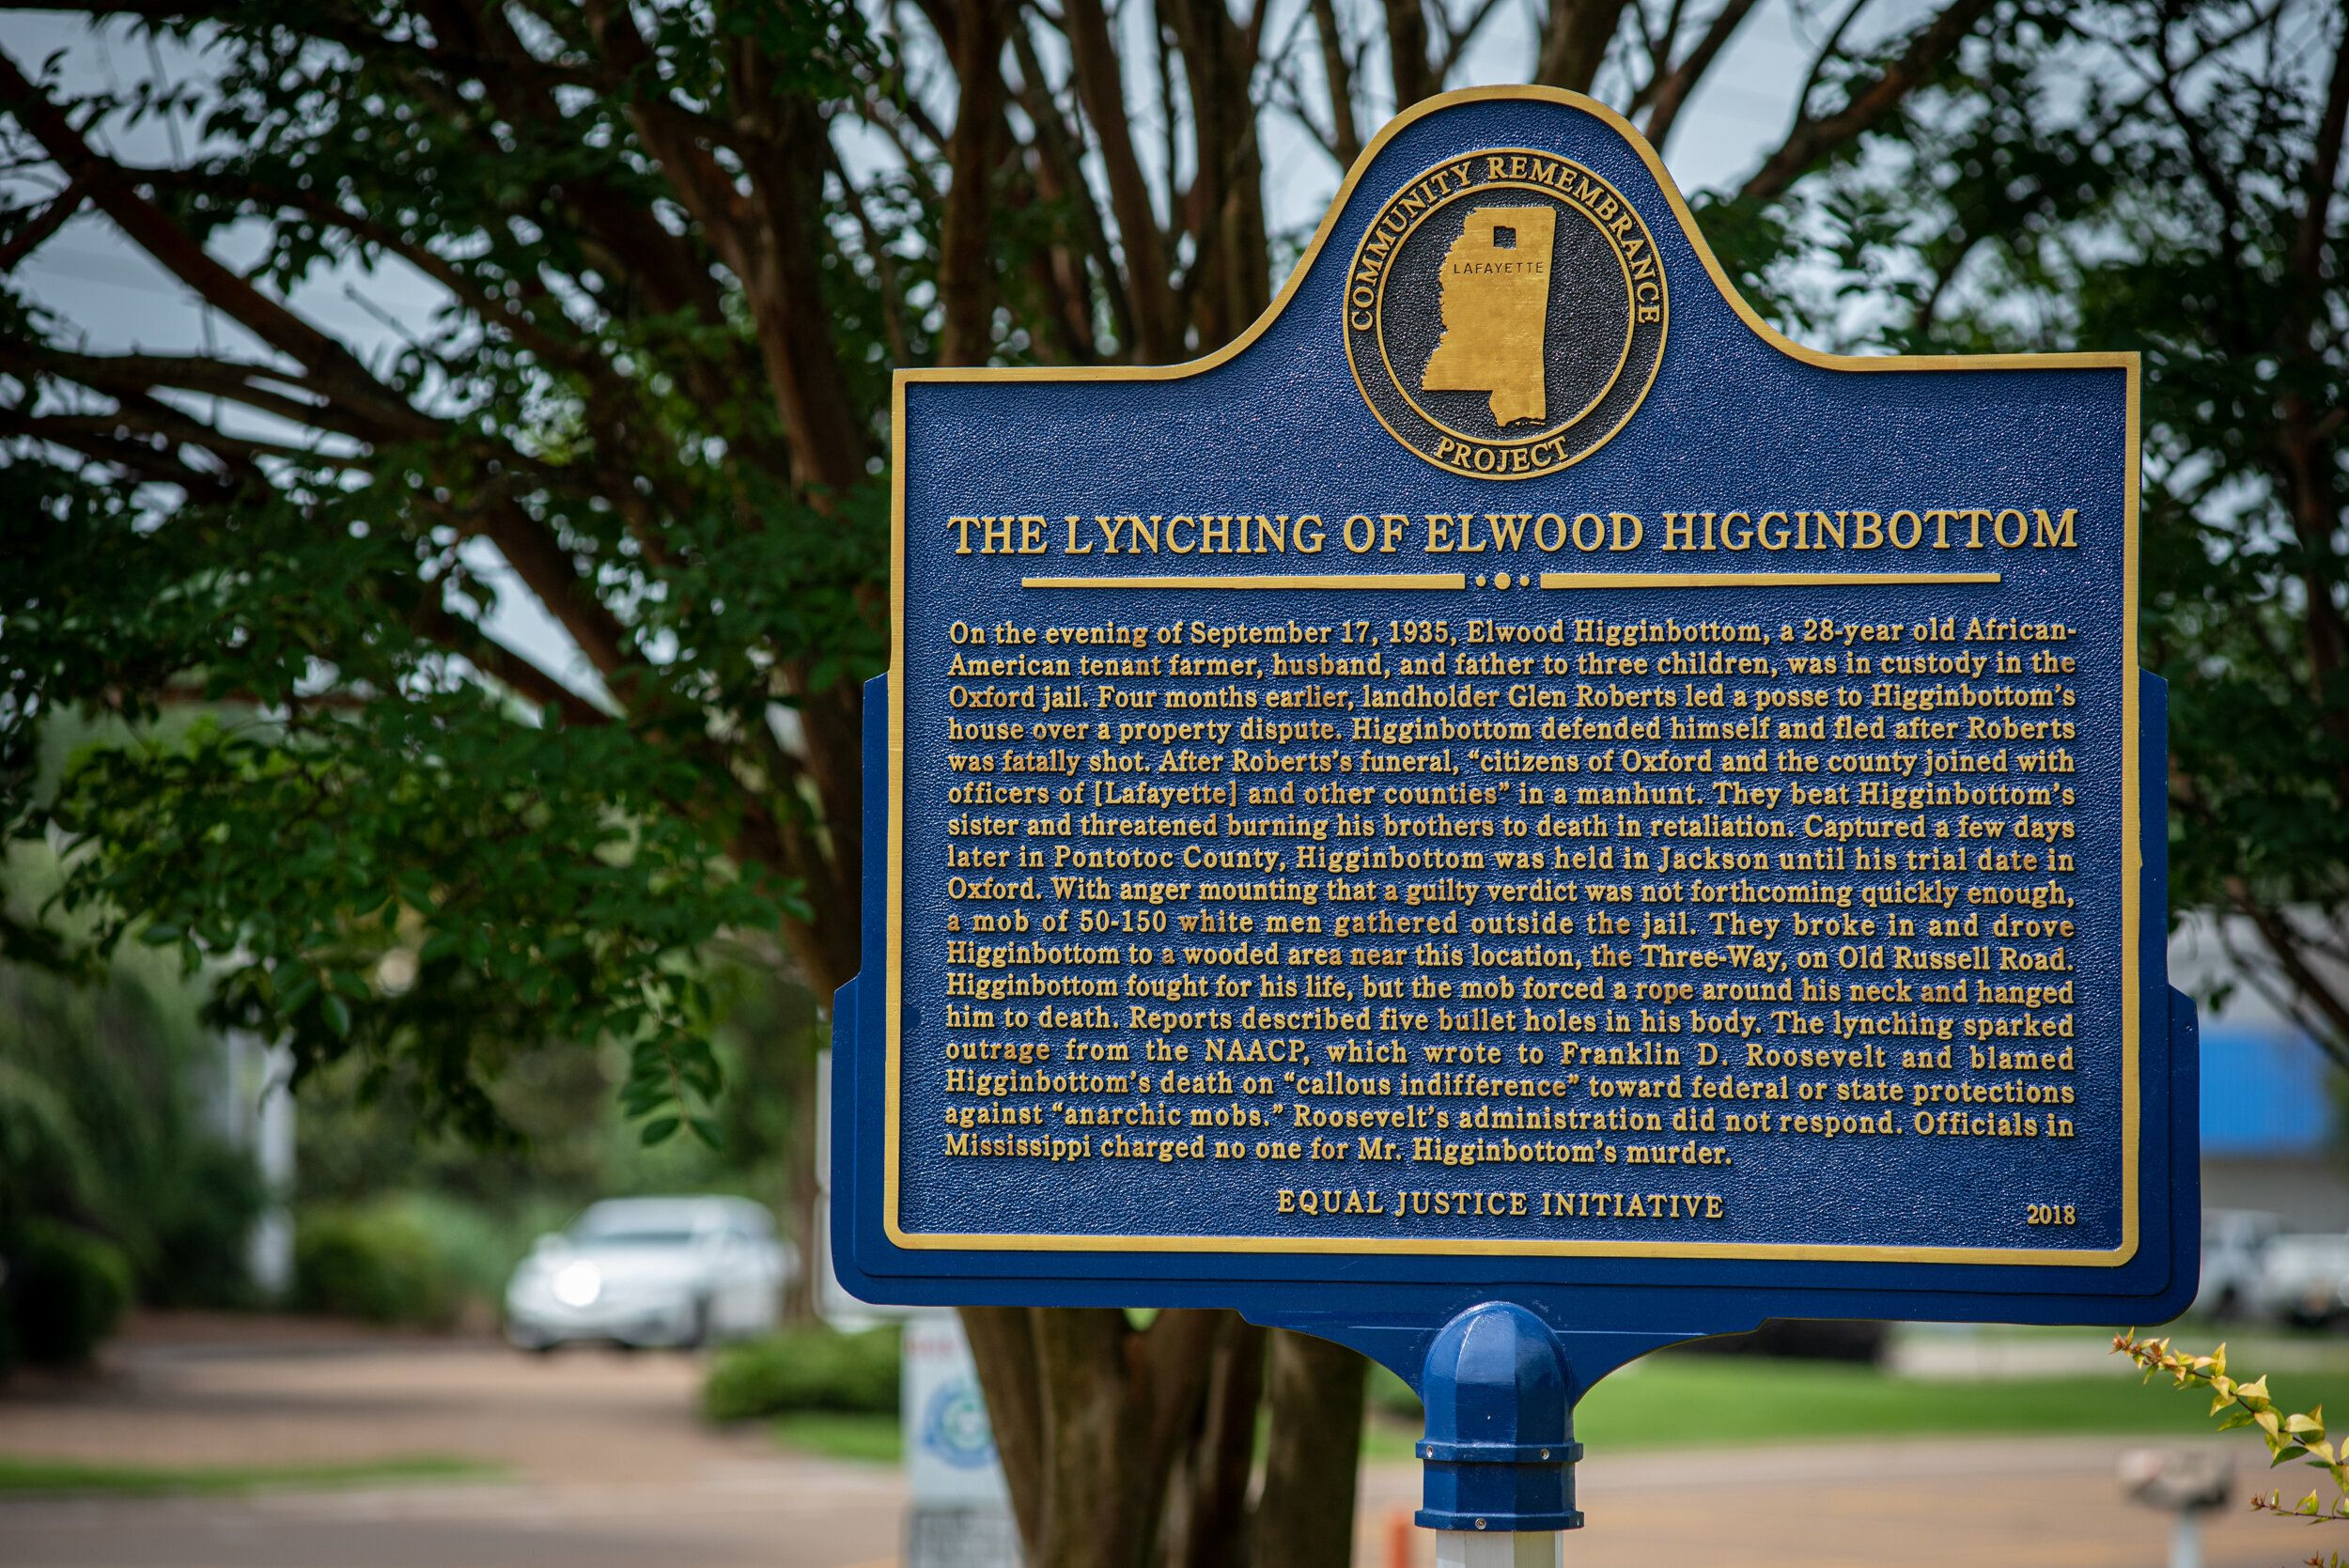 A commemorative plaque marks the spot of the 1935 lynching of Elwood Higginbottom in Oxford, Mississippi. Studies show that a